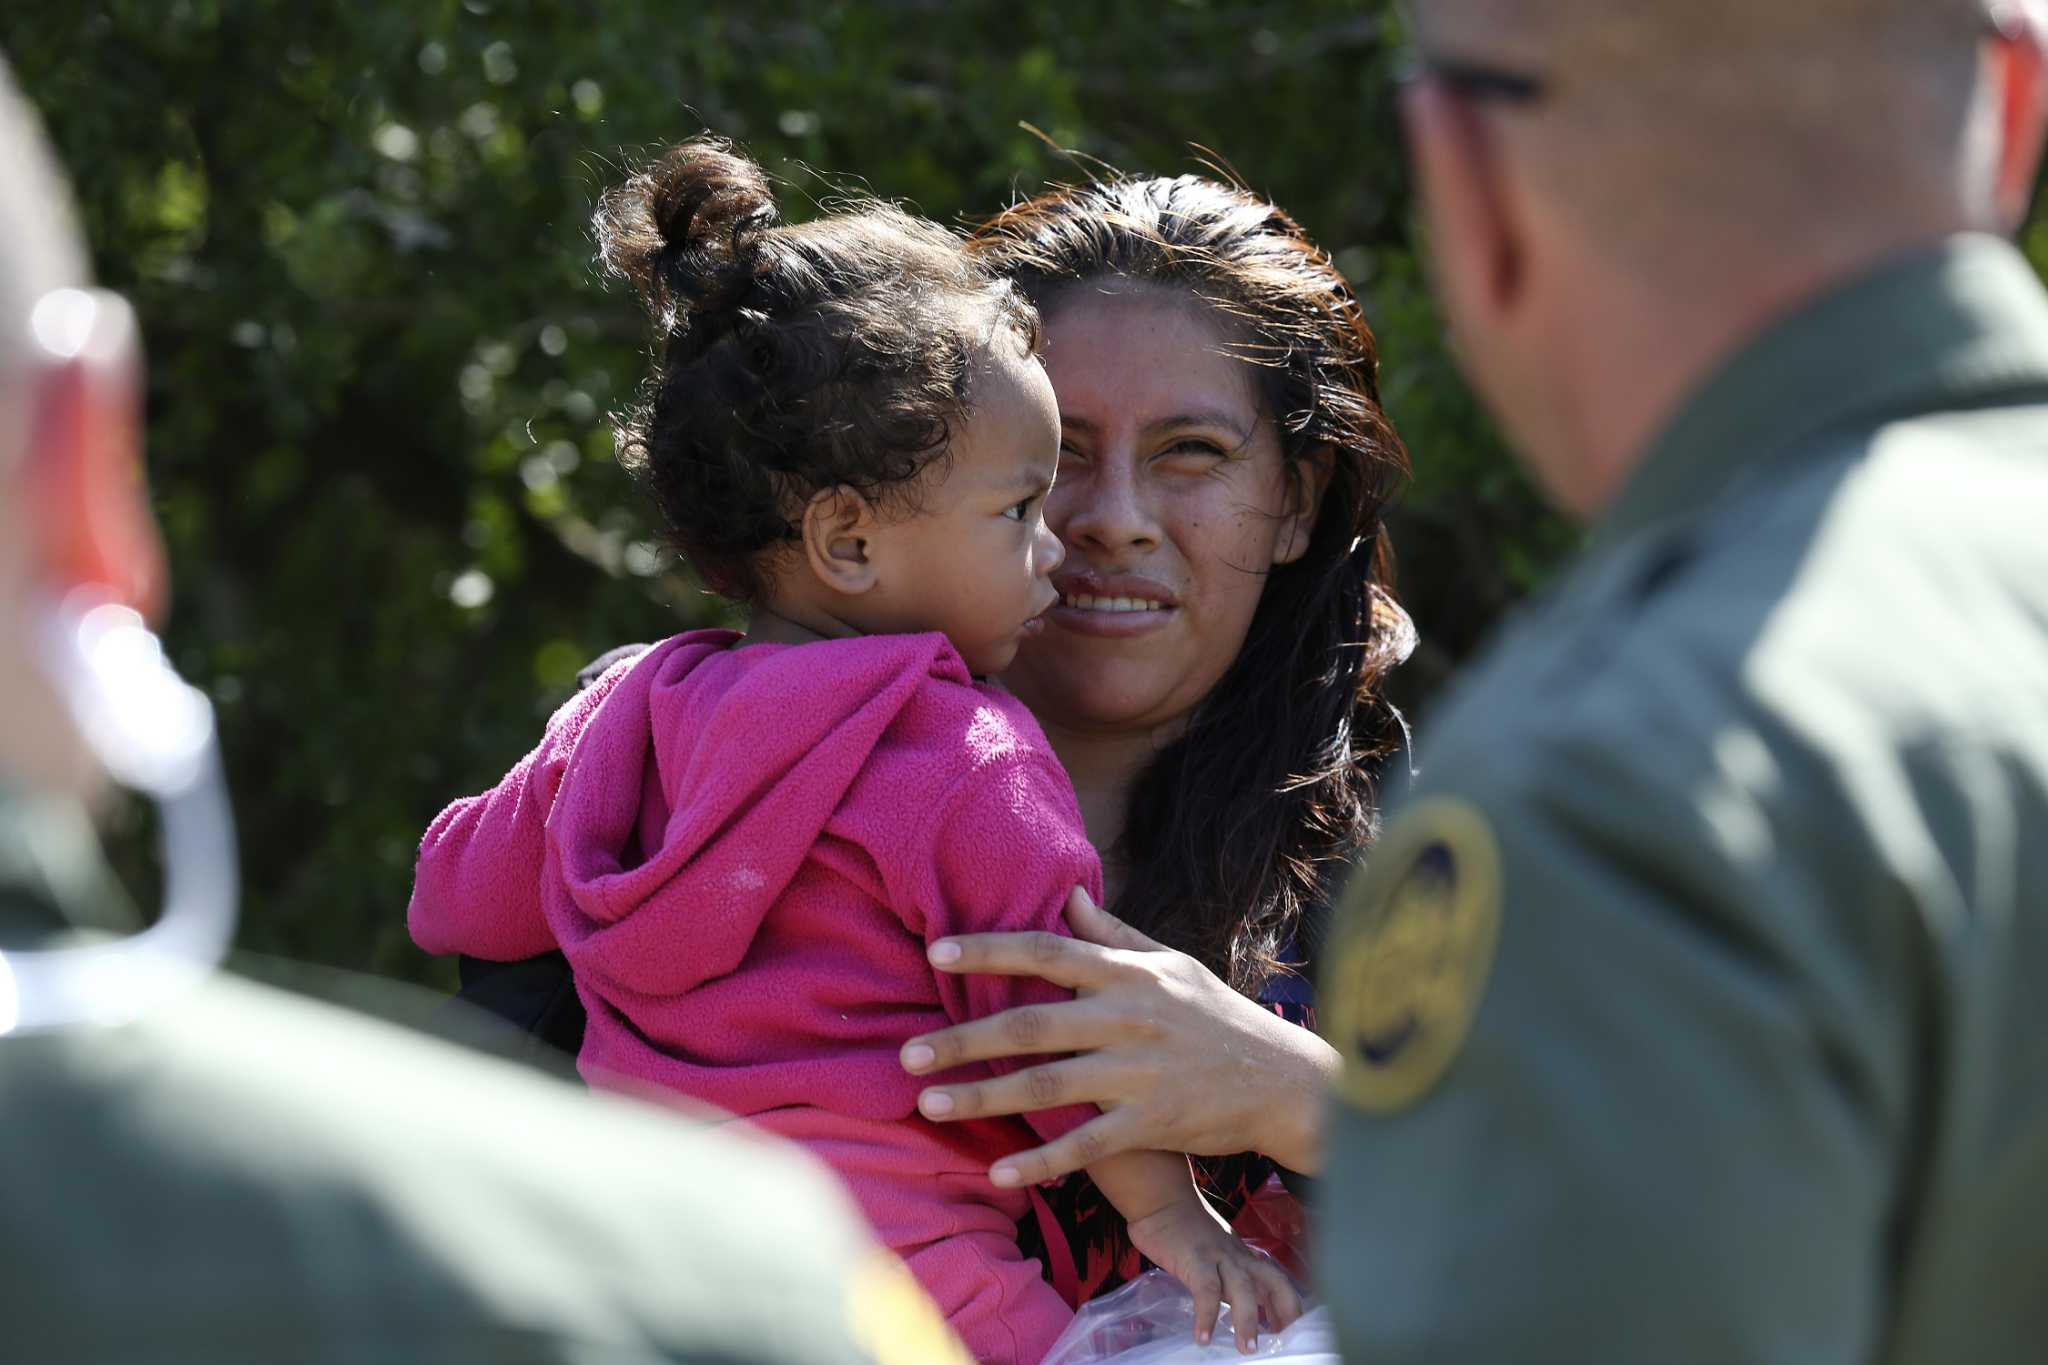 Immigrant families separated at border struggle to find each other